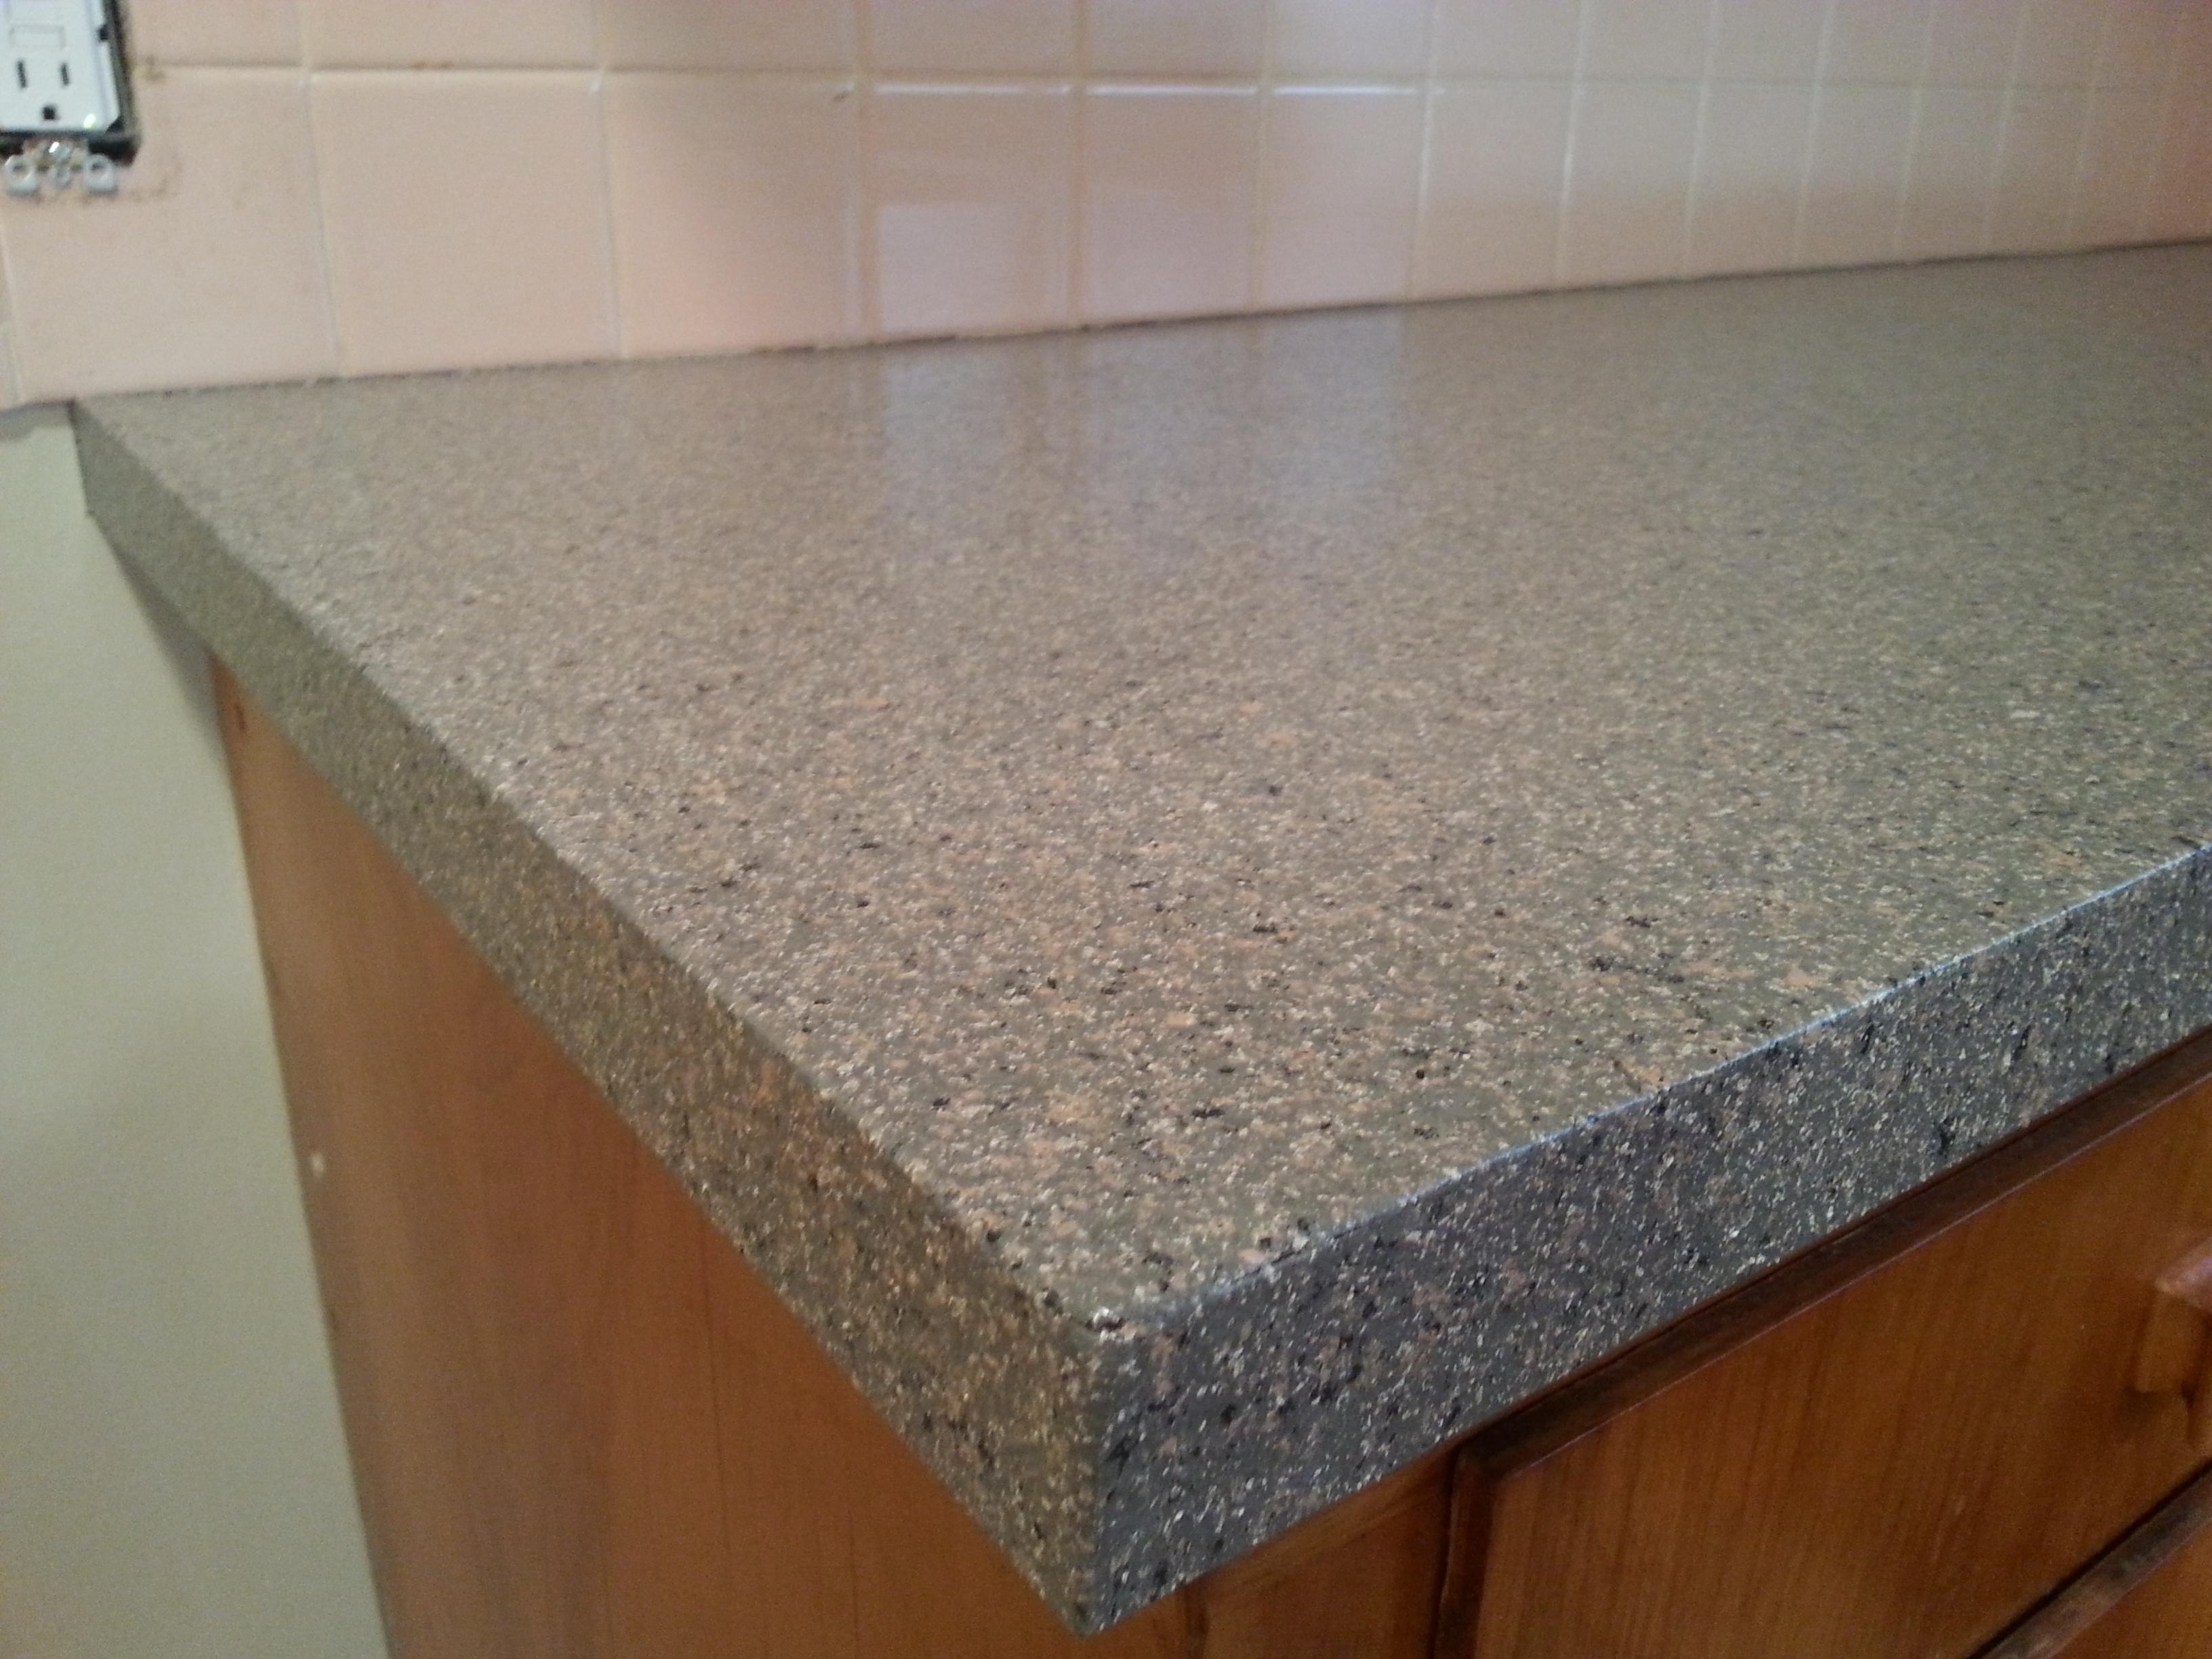 in finishes kitchen solid refinish colours plastic glass for material resurfacing natural a miracle kitchens countertops method waterlox countertop solidc granite formica unusual stone beautiful c painting laminate recycled with view modern gallery leathered